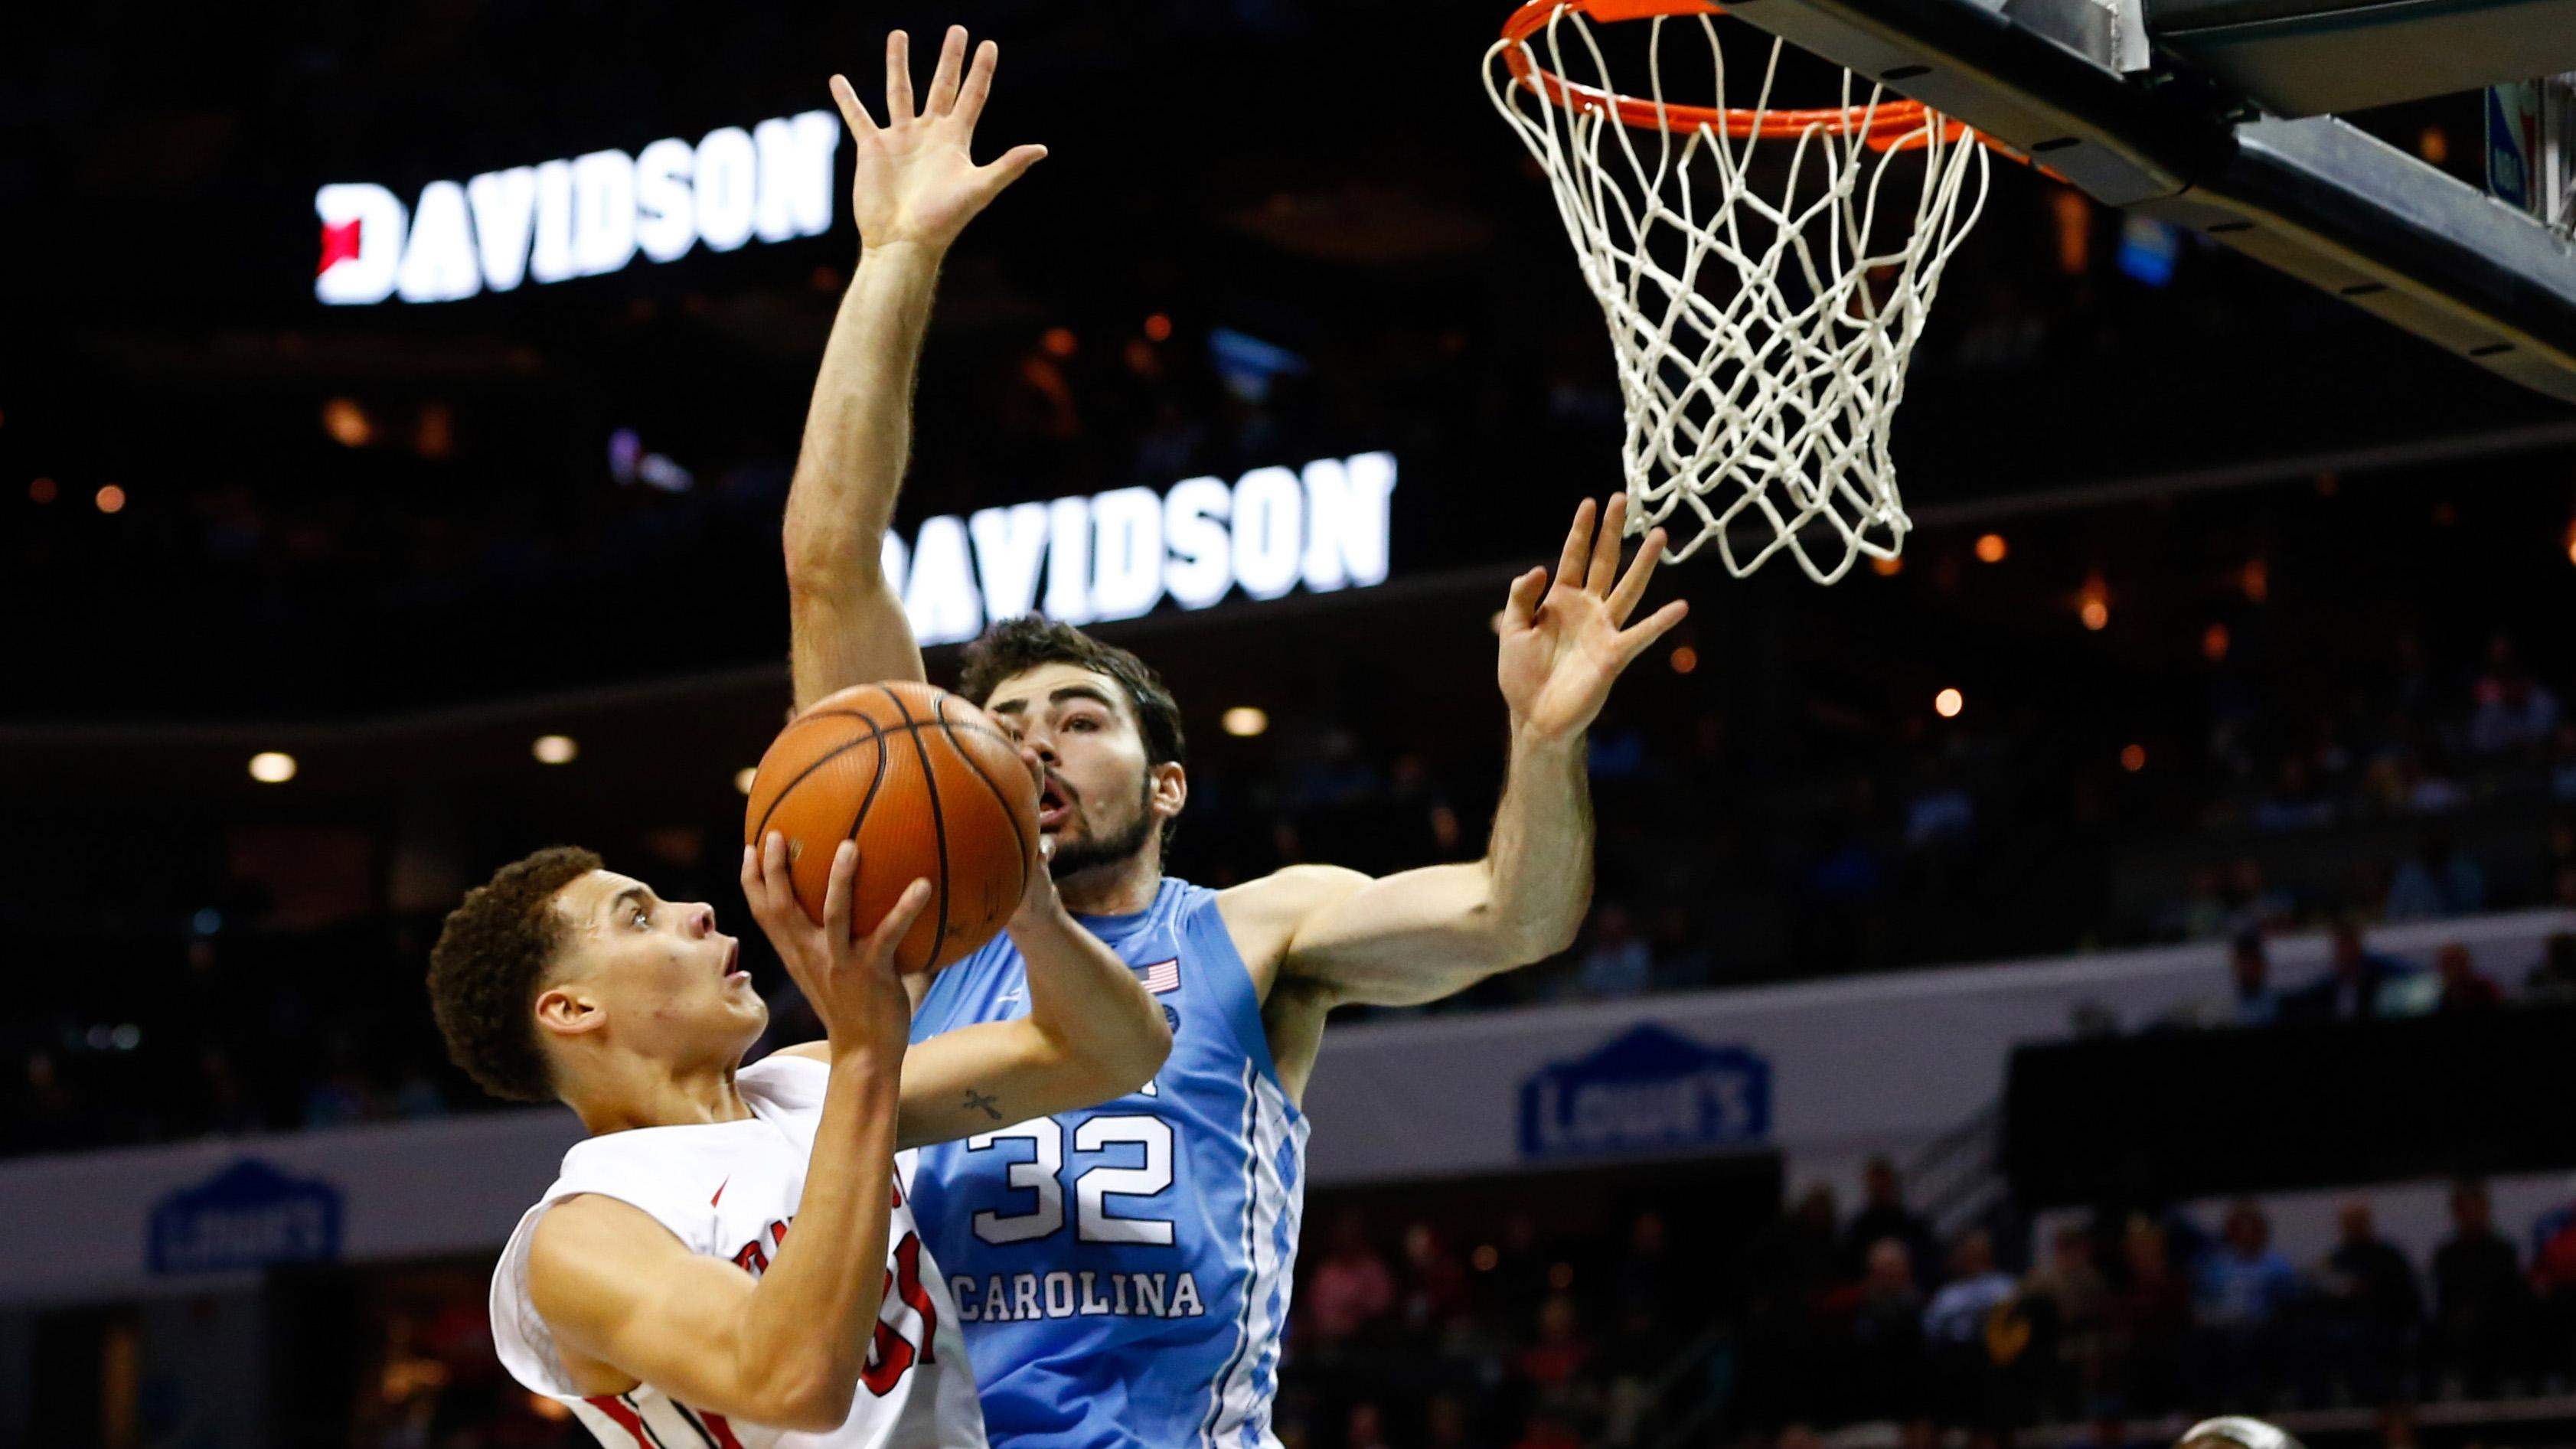 Davidson's Kellan Grady shoots over North Carolina's Luke Maye